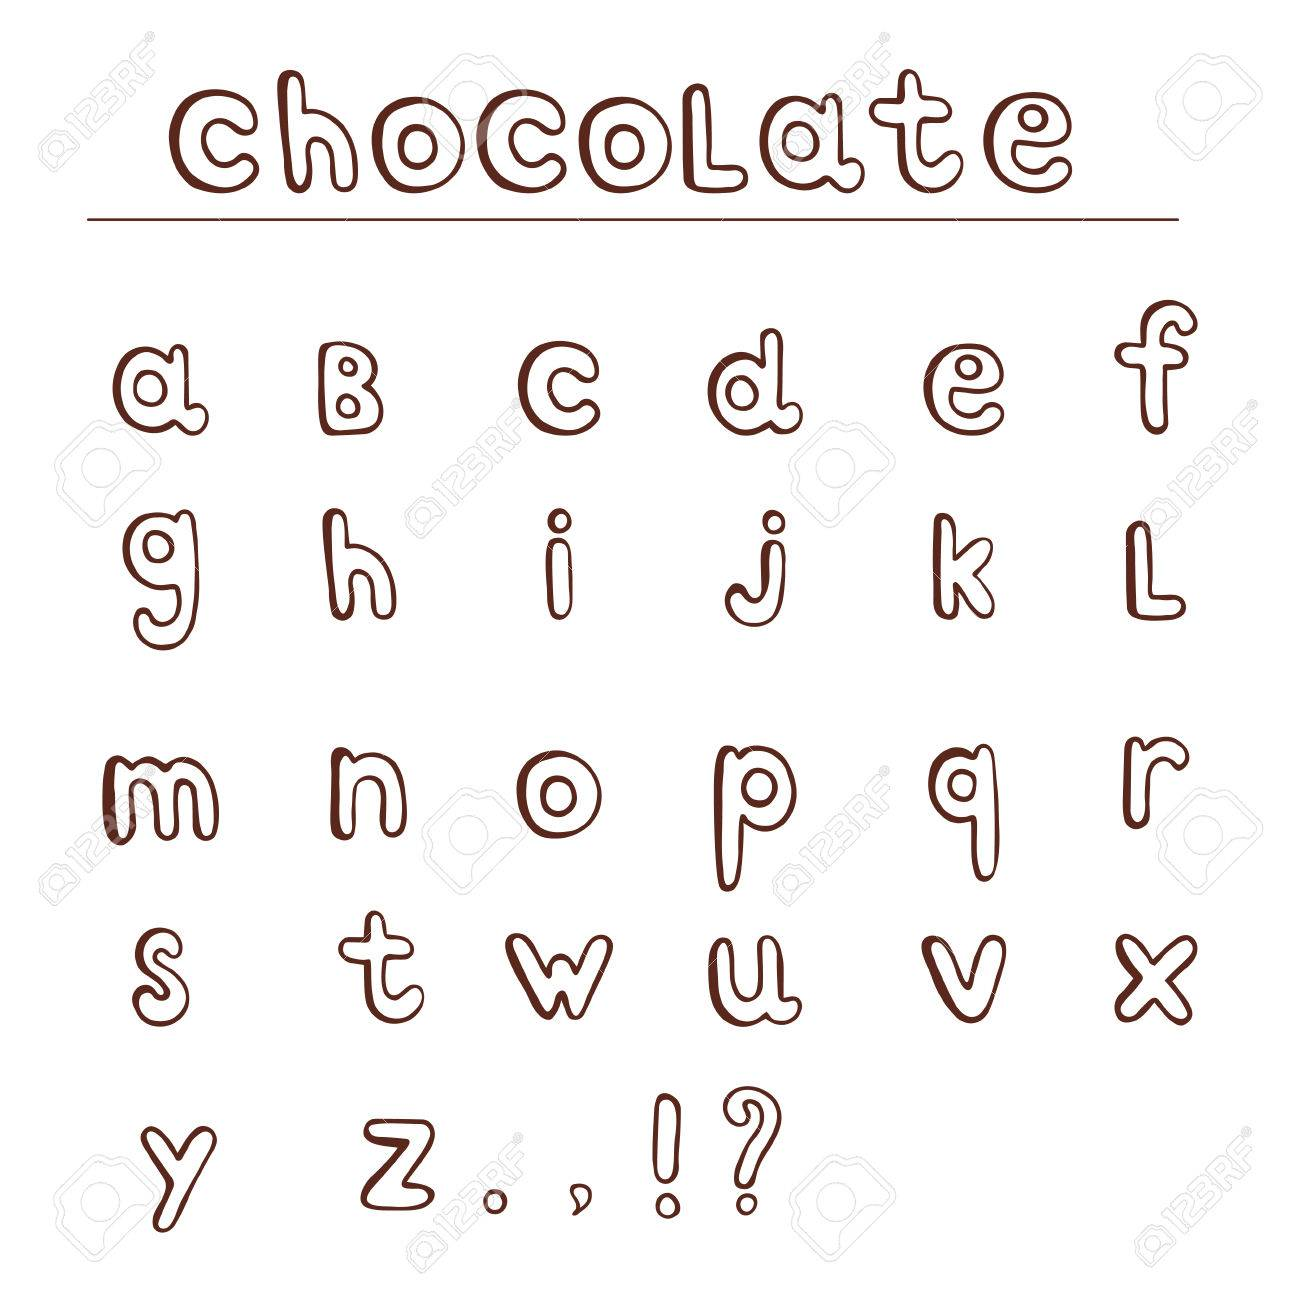 Chocolate Hand Draw Alphabet ABC For Your Projects And Design Lower Case Isolated